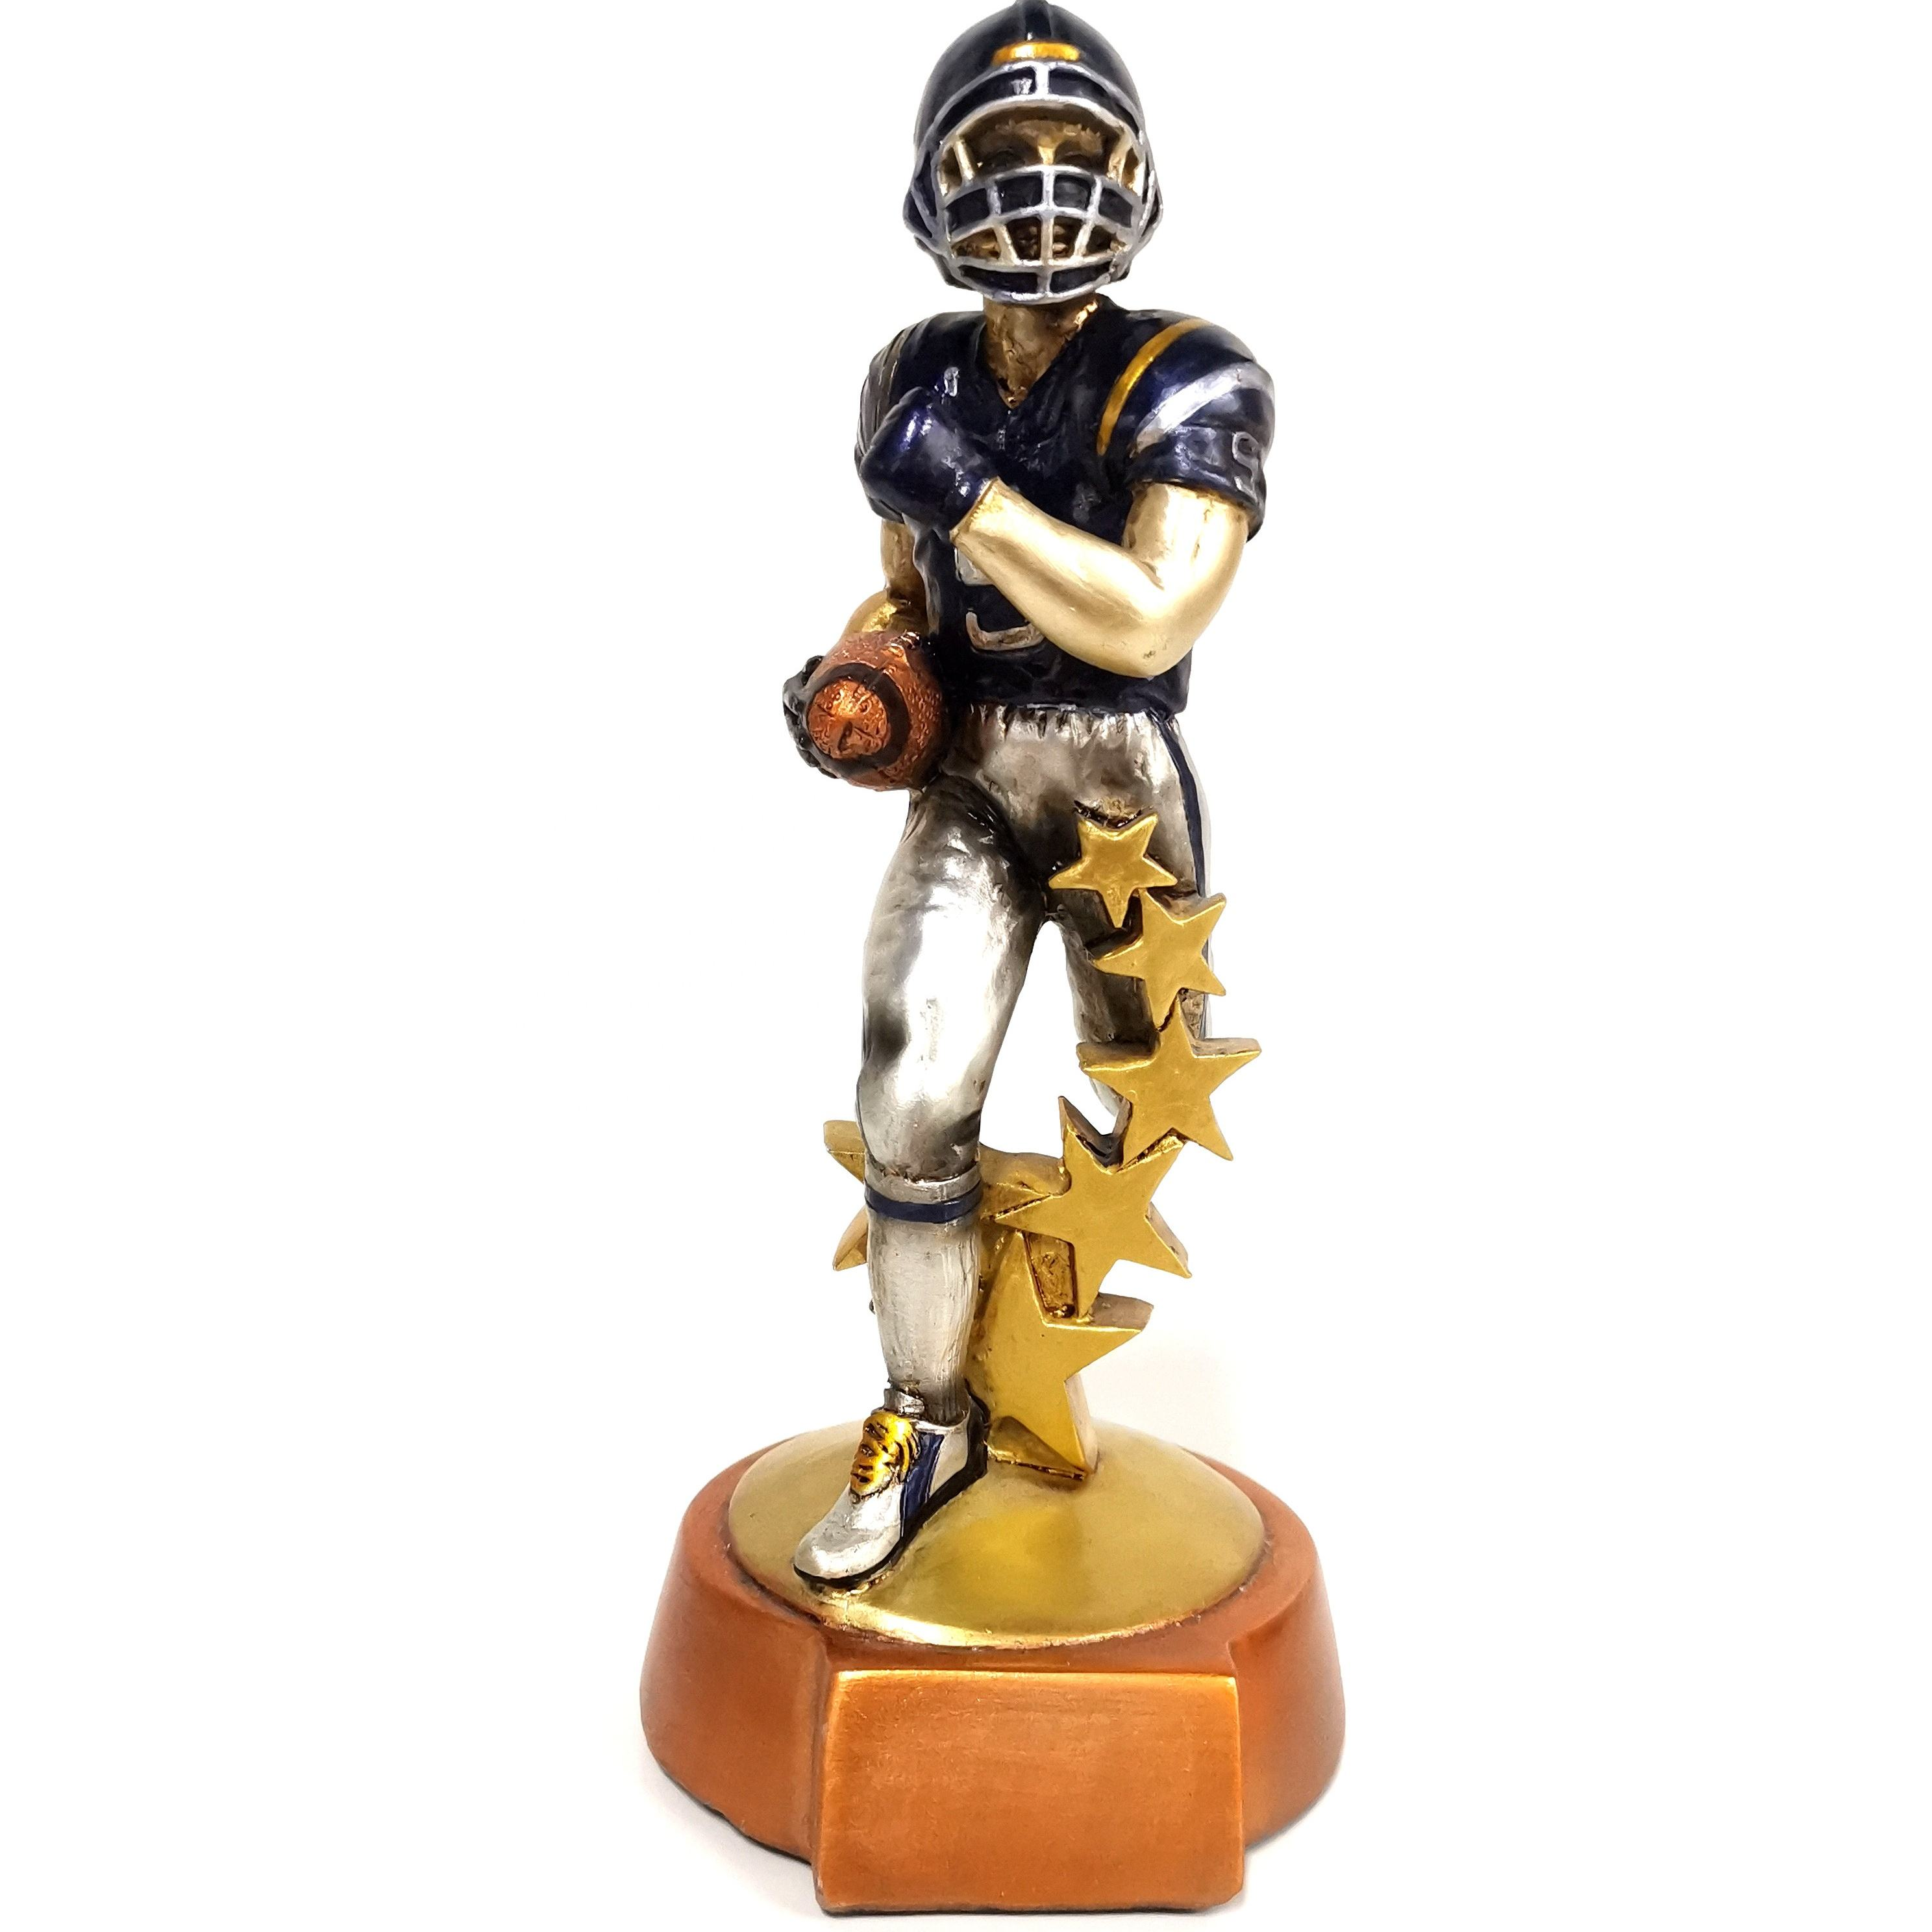 wholesale baseball stars bobble head ornament customized various and trophies gifts custom Bobble head sports souvenirs